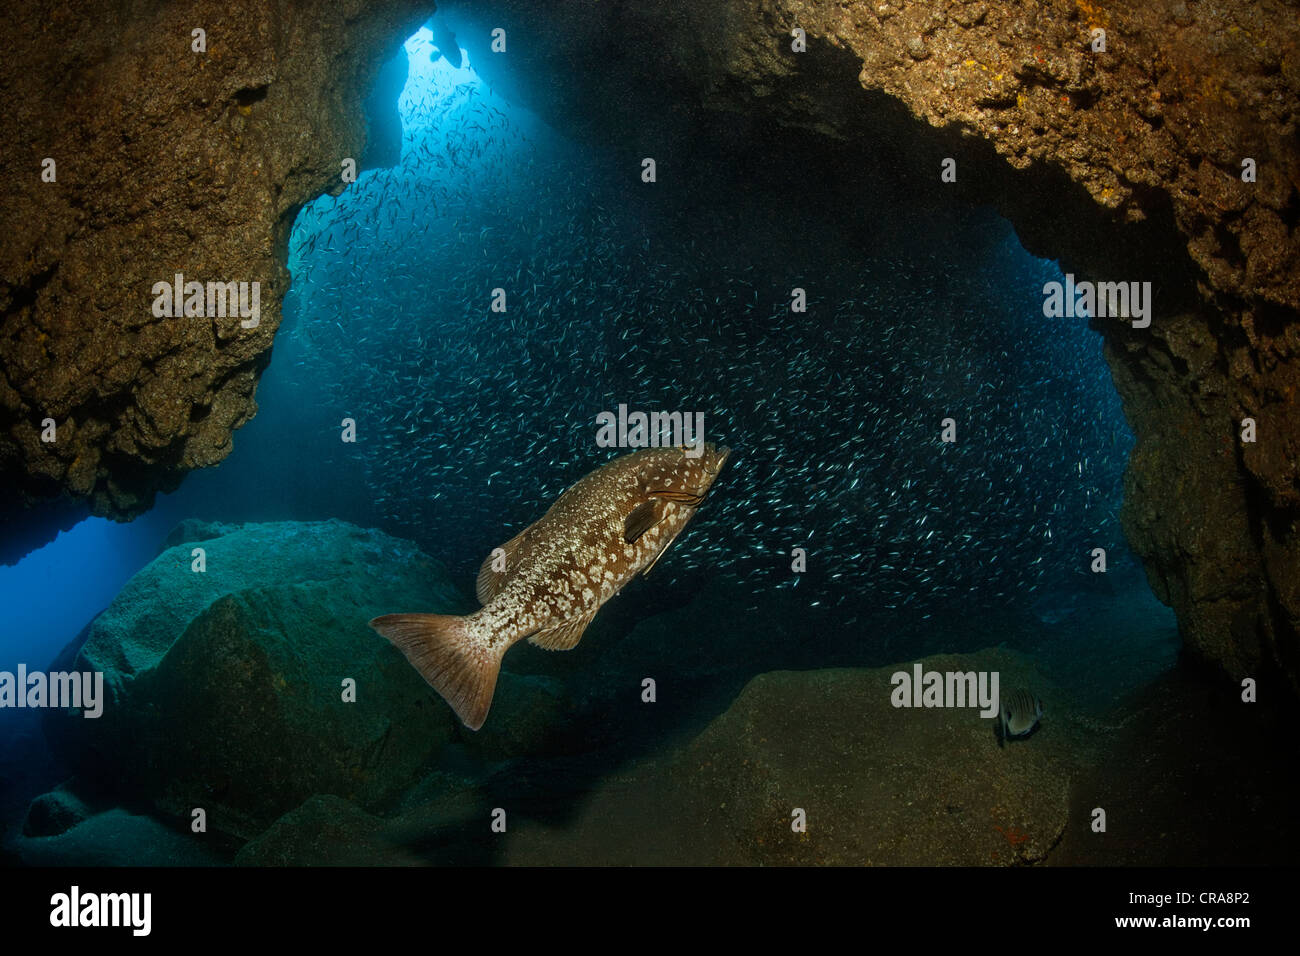 Comb Grouper (Mycteroperca fusca) chasing school of Sand Smelt (Atherina presbyter) in a cave, Madeira, Portugal, - Stock Image